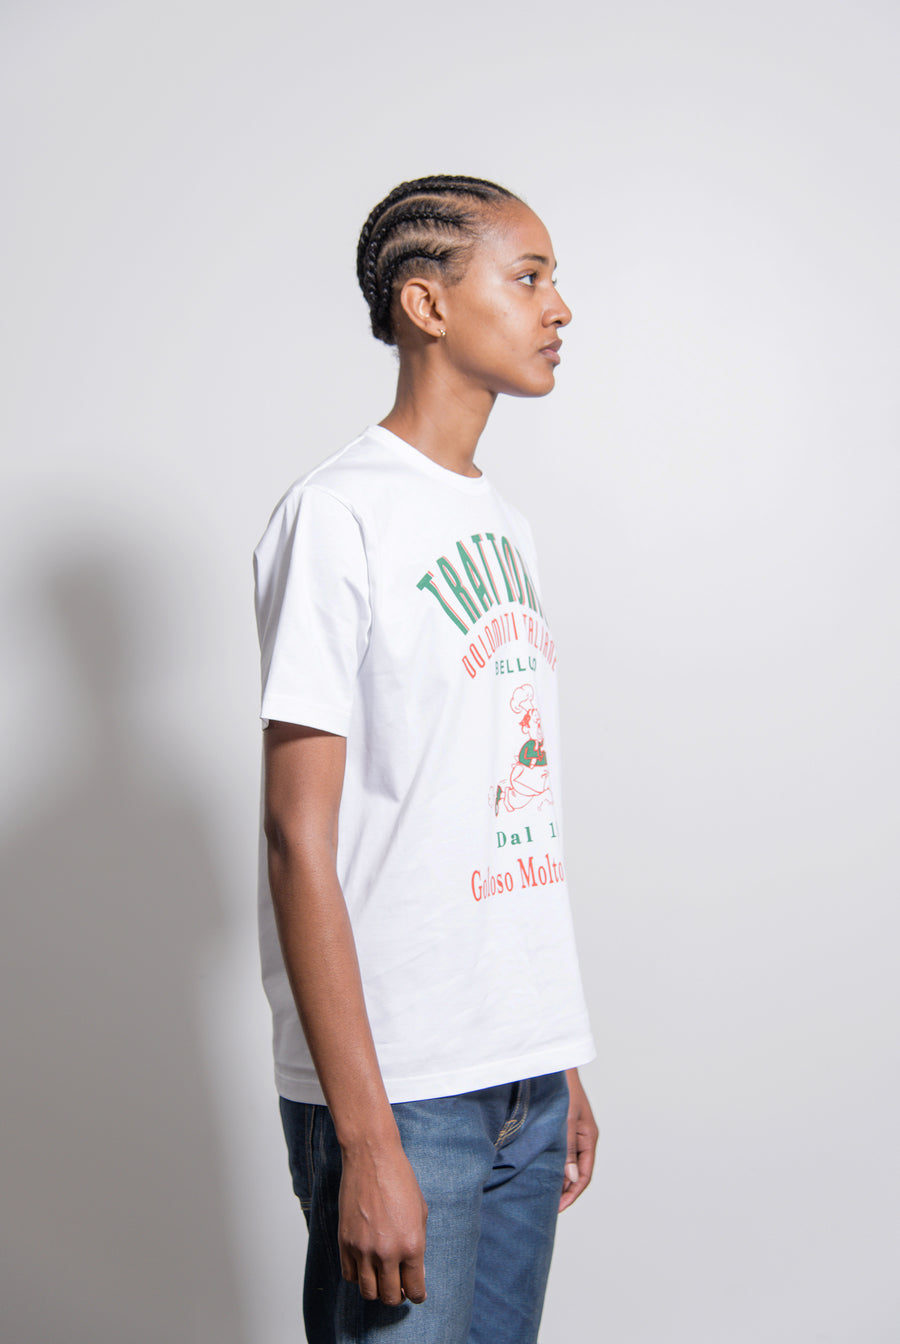 Trattoria High Density Jersey Print Tee White/Green/Red